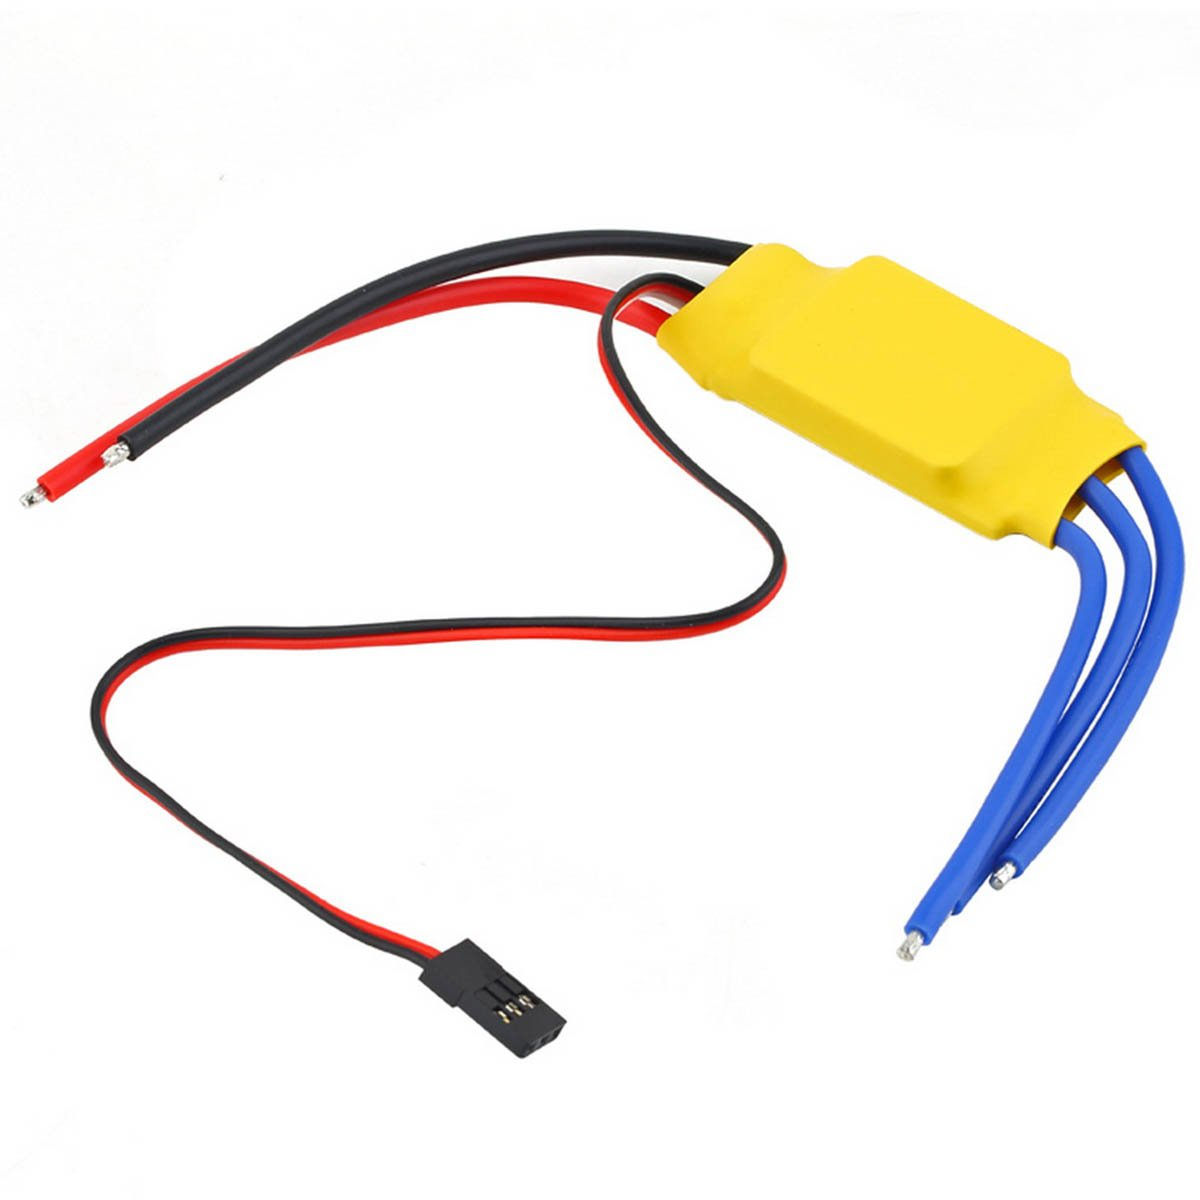 Amazon.com: 30A Brushless Motor Speed Controller RC BEC ESC T-rex 450 V2 Helicopter Boat plastic yellow, by LC Prime: Home Audio & Theater